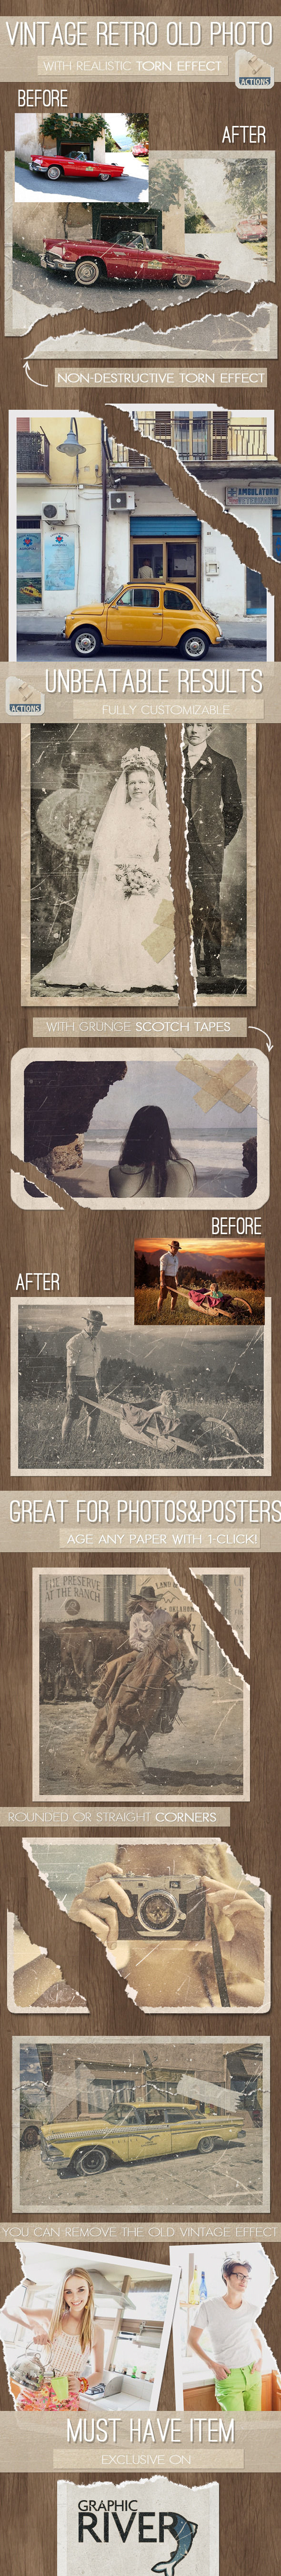 Old Photo with Torn Ripped Effect Photoshop Action - Photo Effects Actions